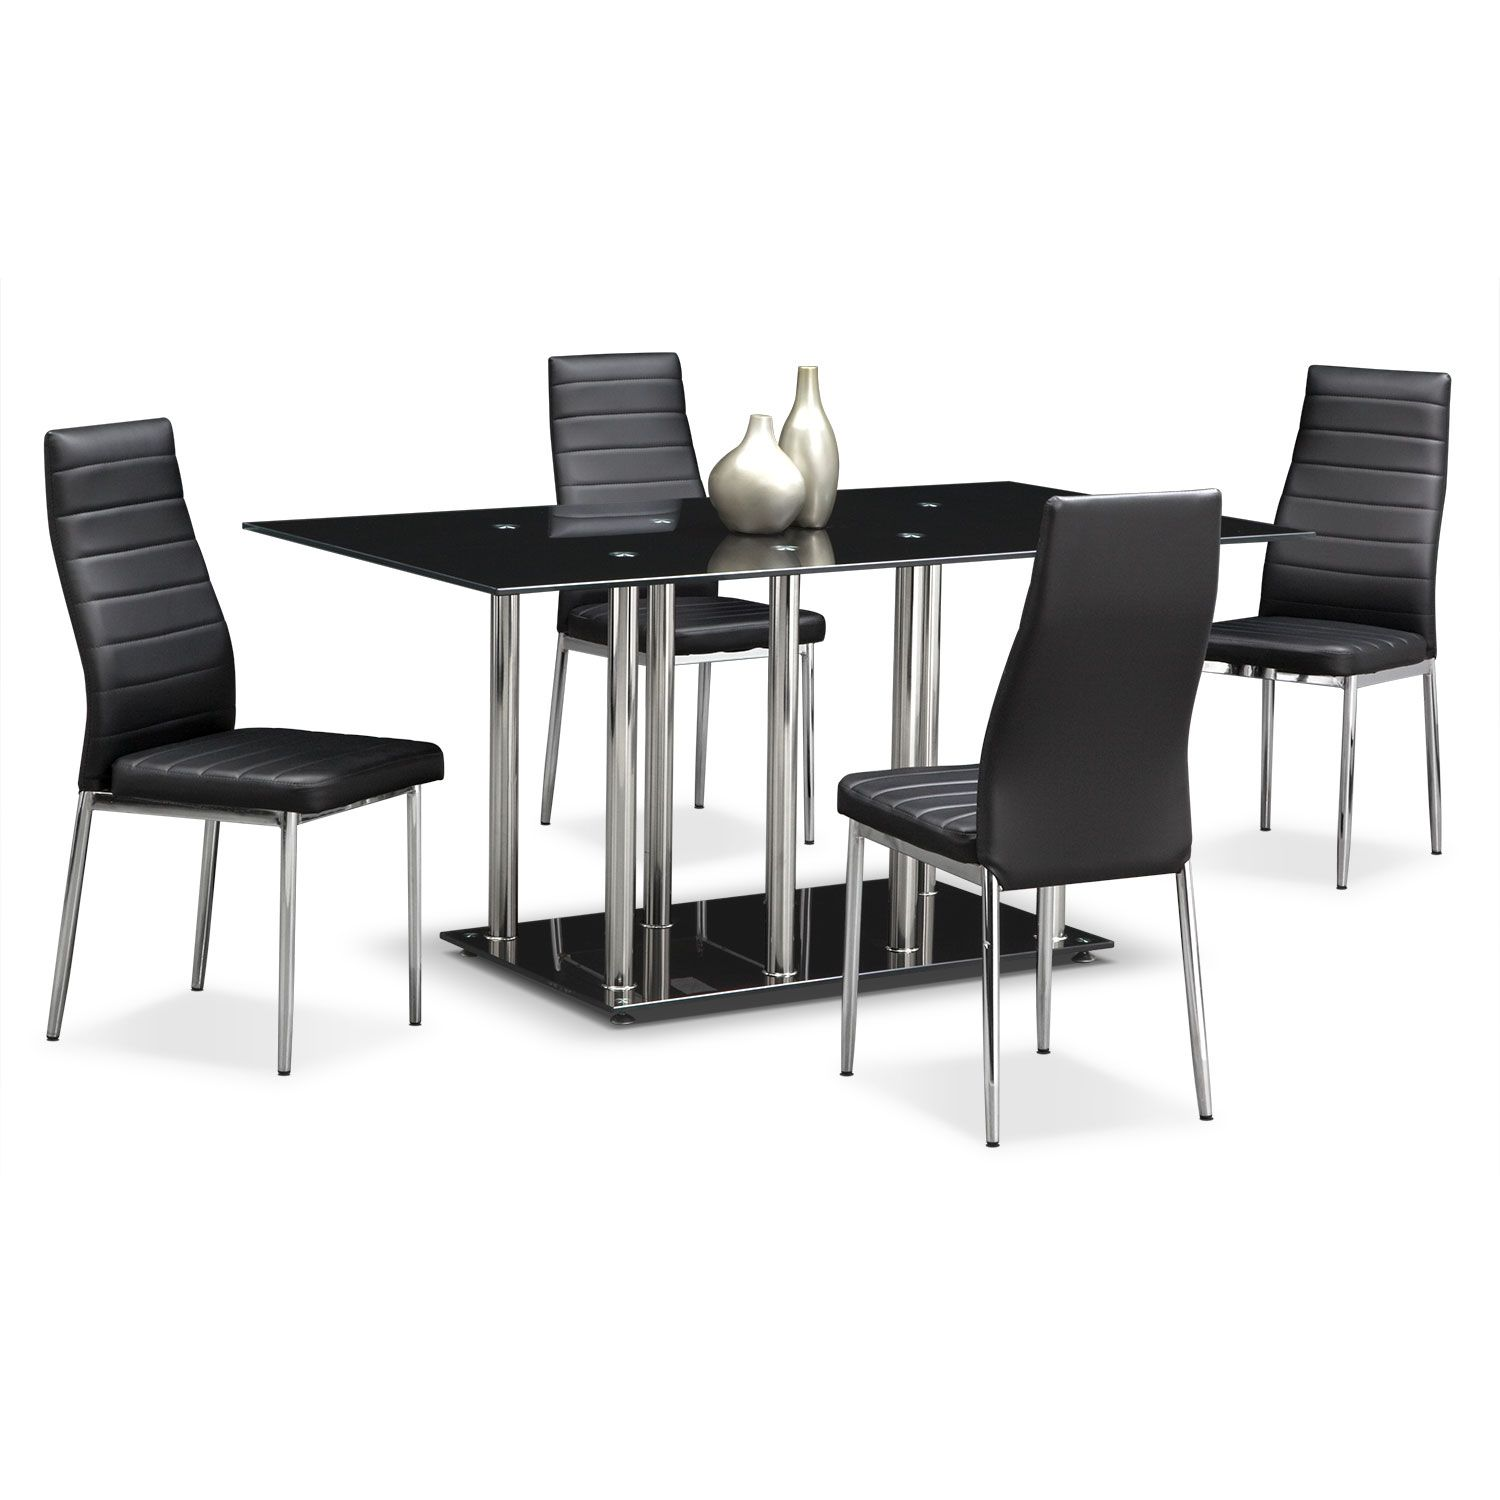 artfully industrial. the modern stratus dining collection is